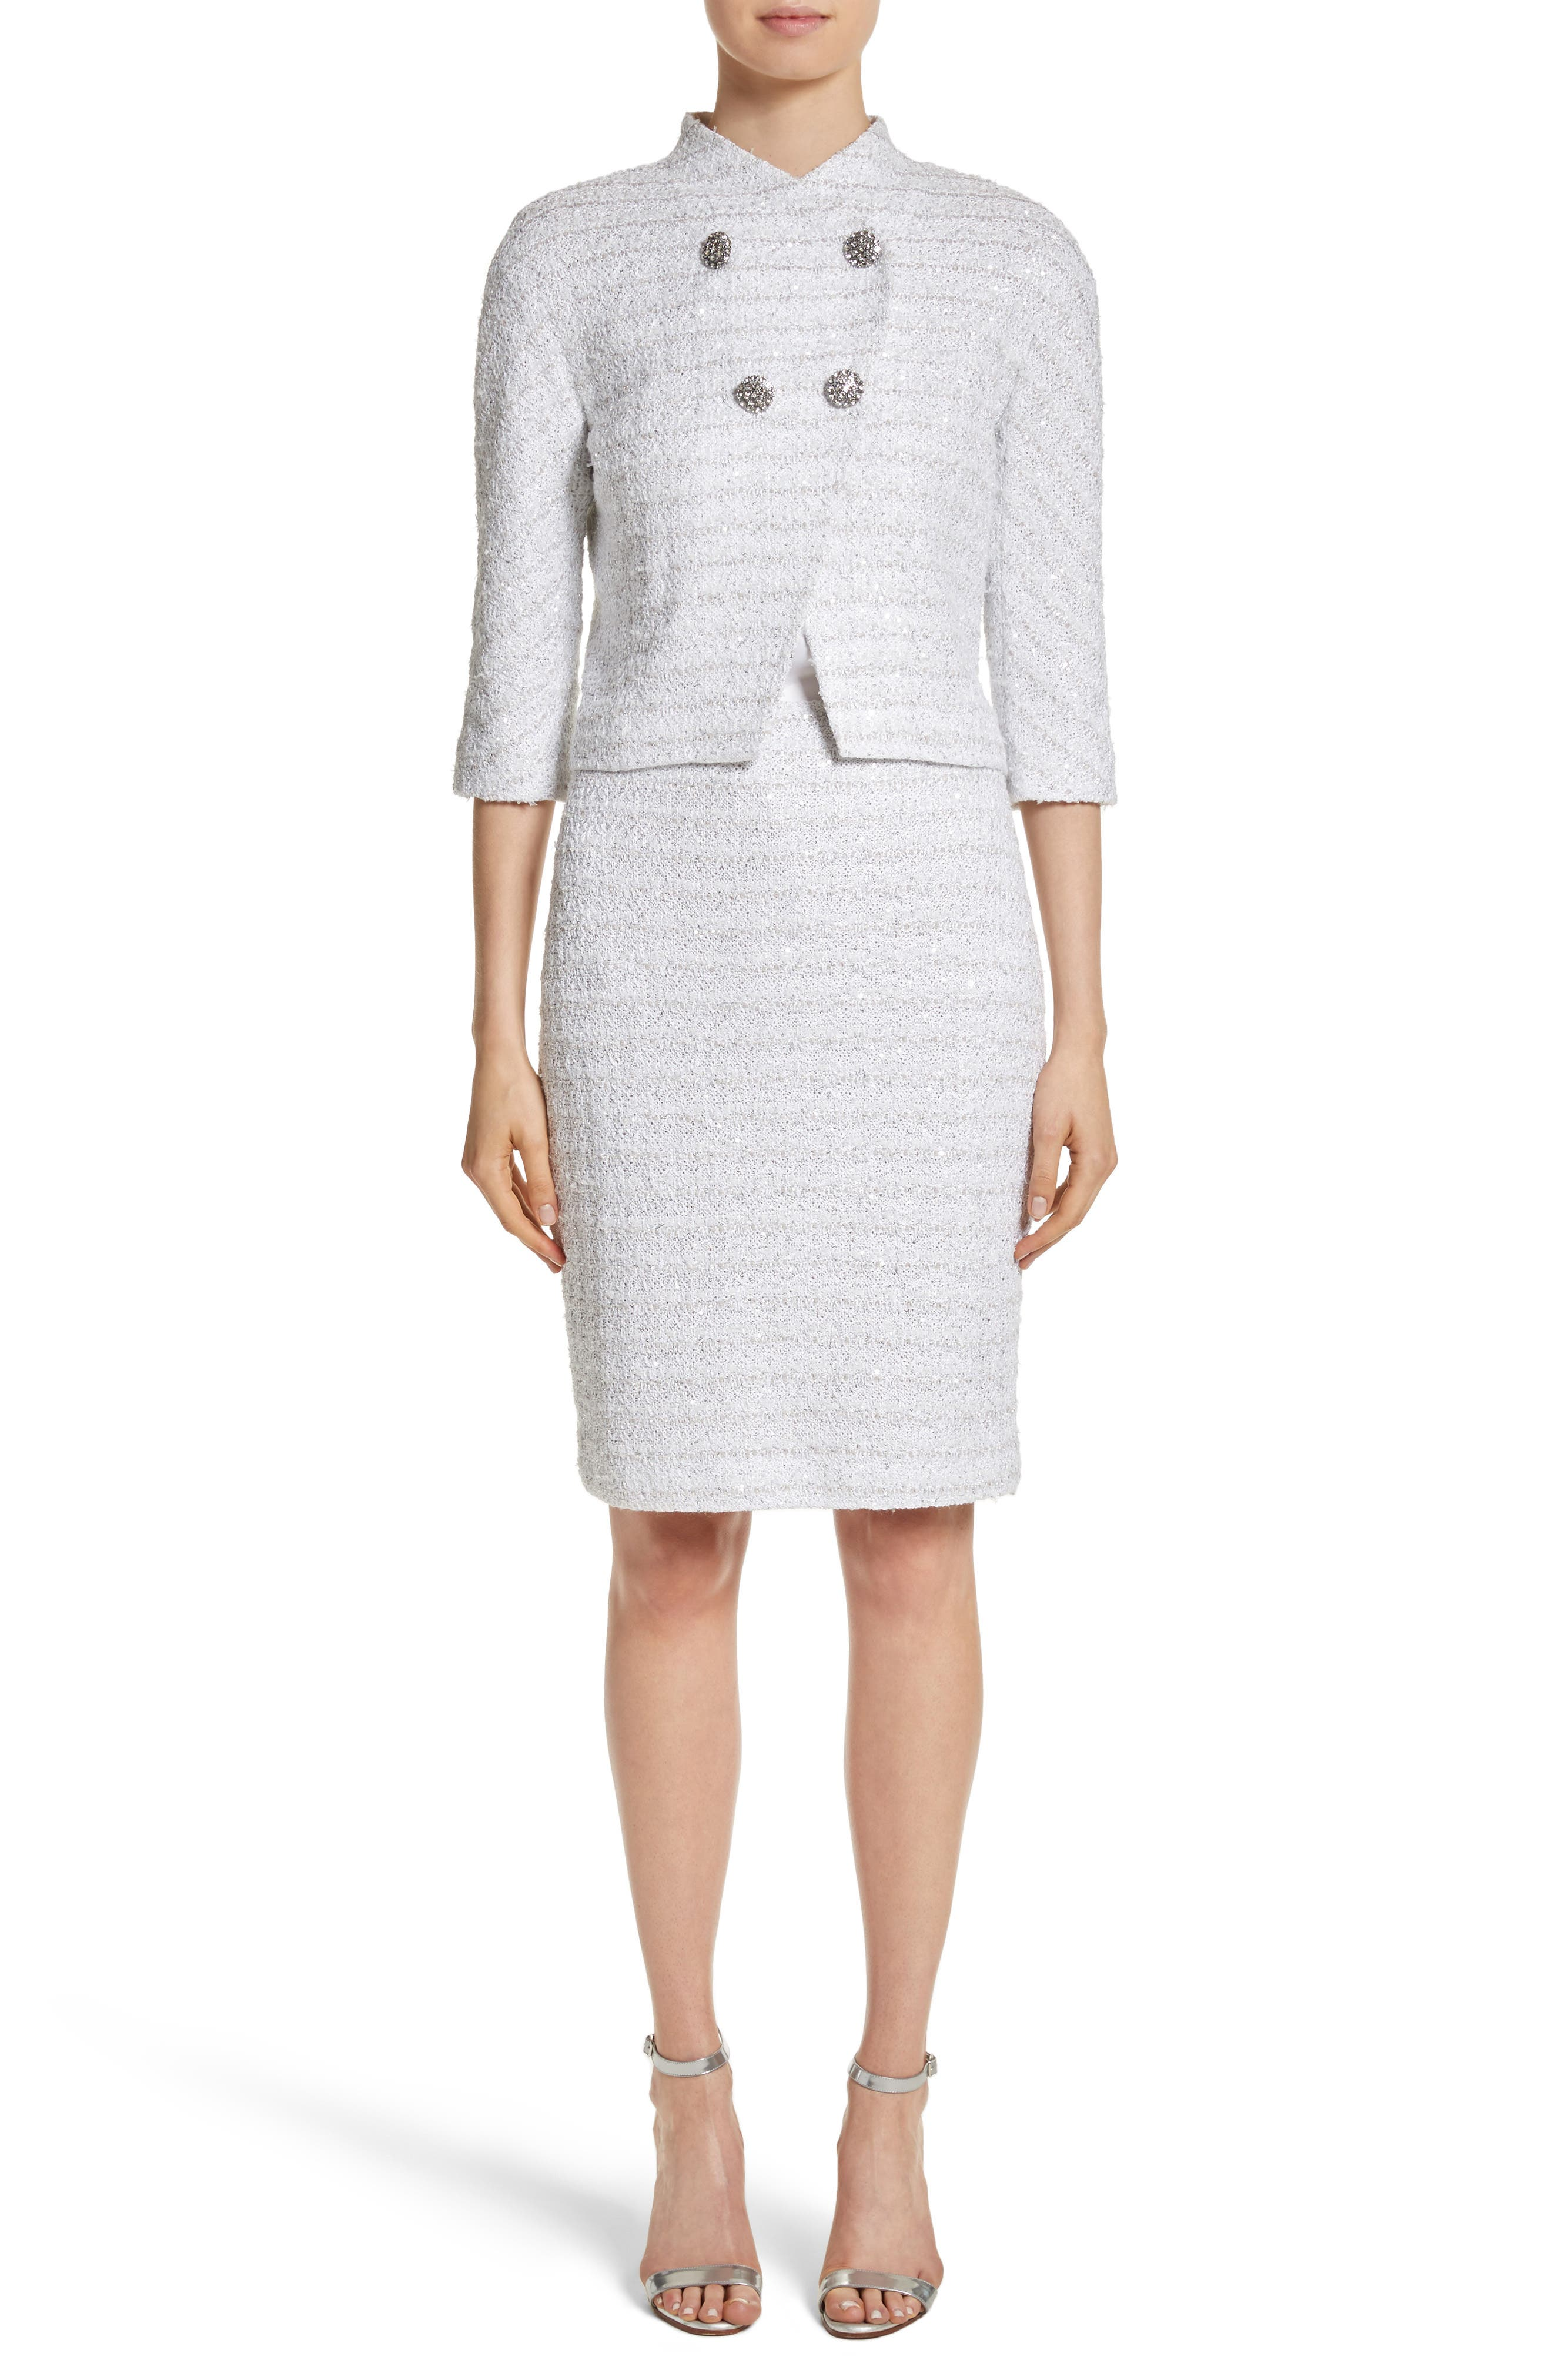 Frosted Metallic Tweed Pencil Skirt,                             Alternate thumbnail 8, color,                             Bianco Multi